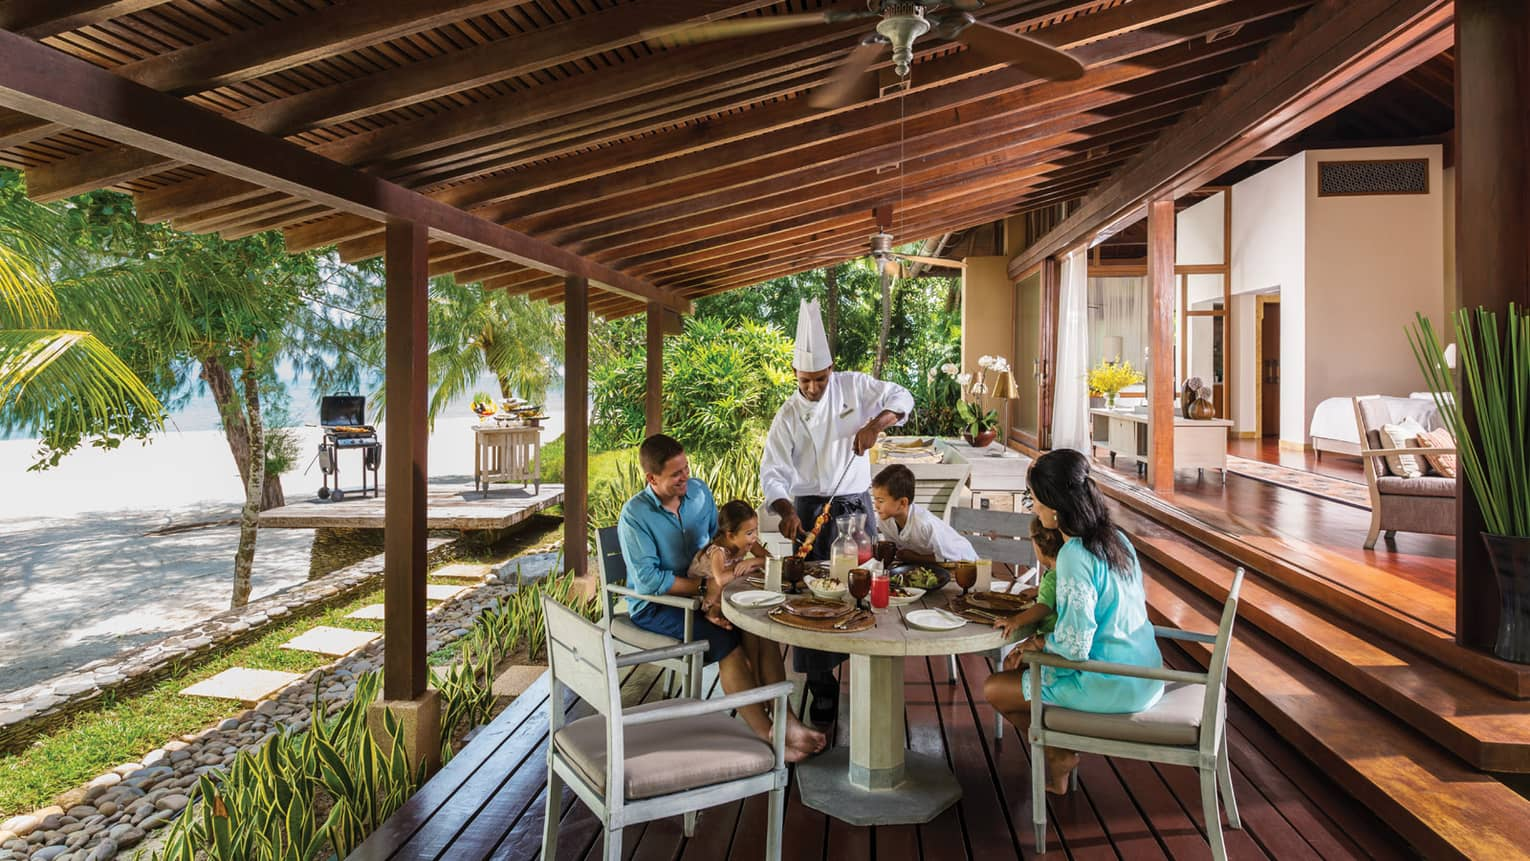 Chef in uniform presents meat skewer to family around table on Beach Villa patio